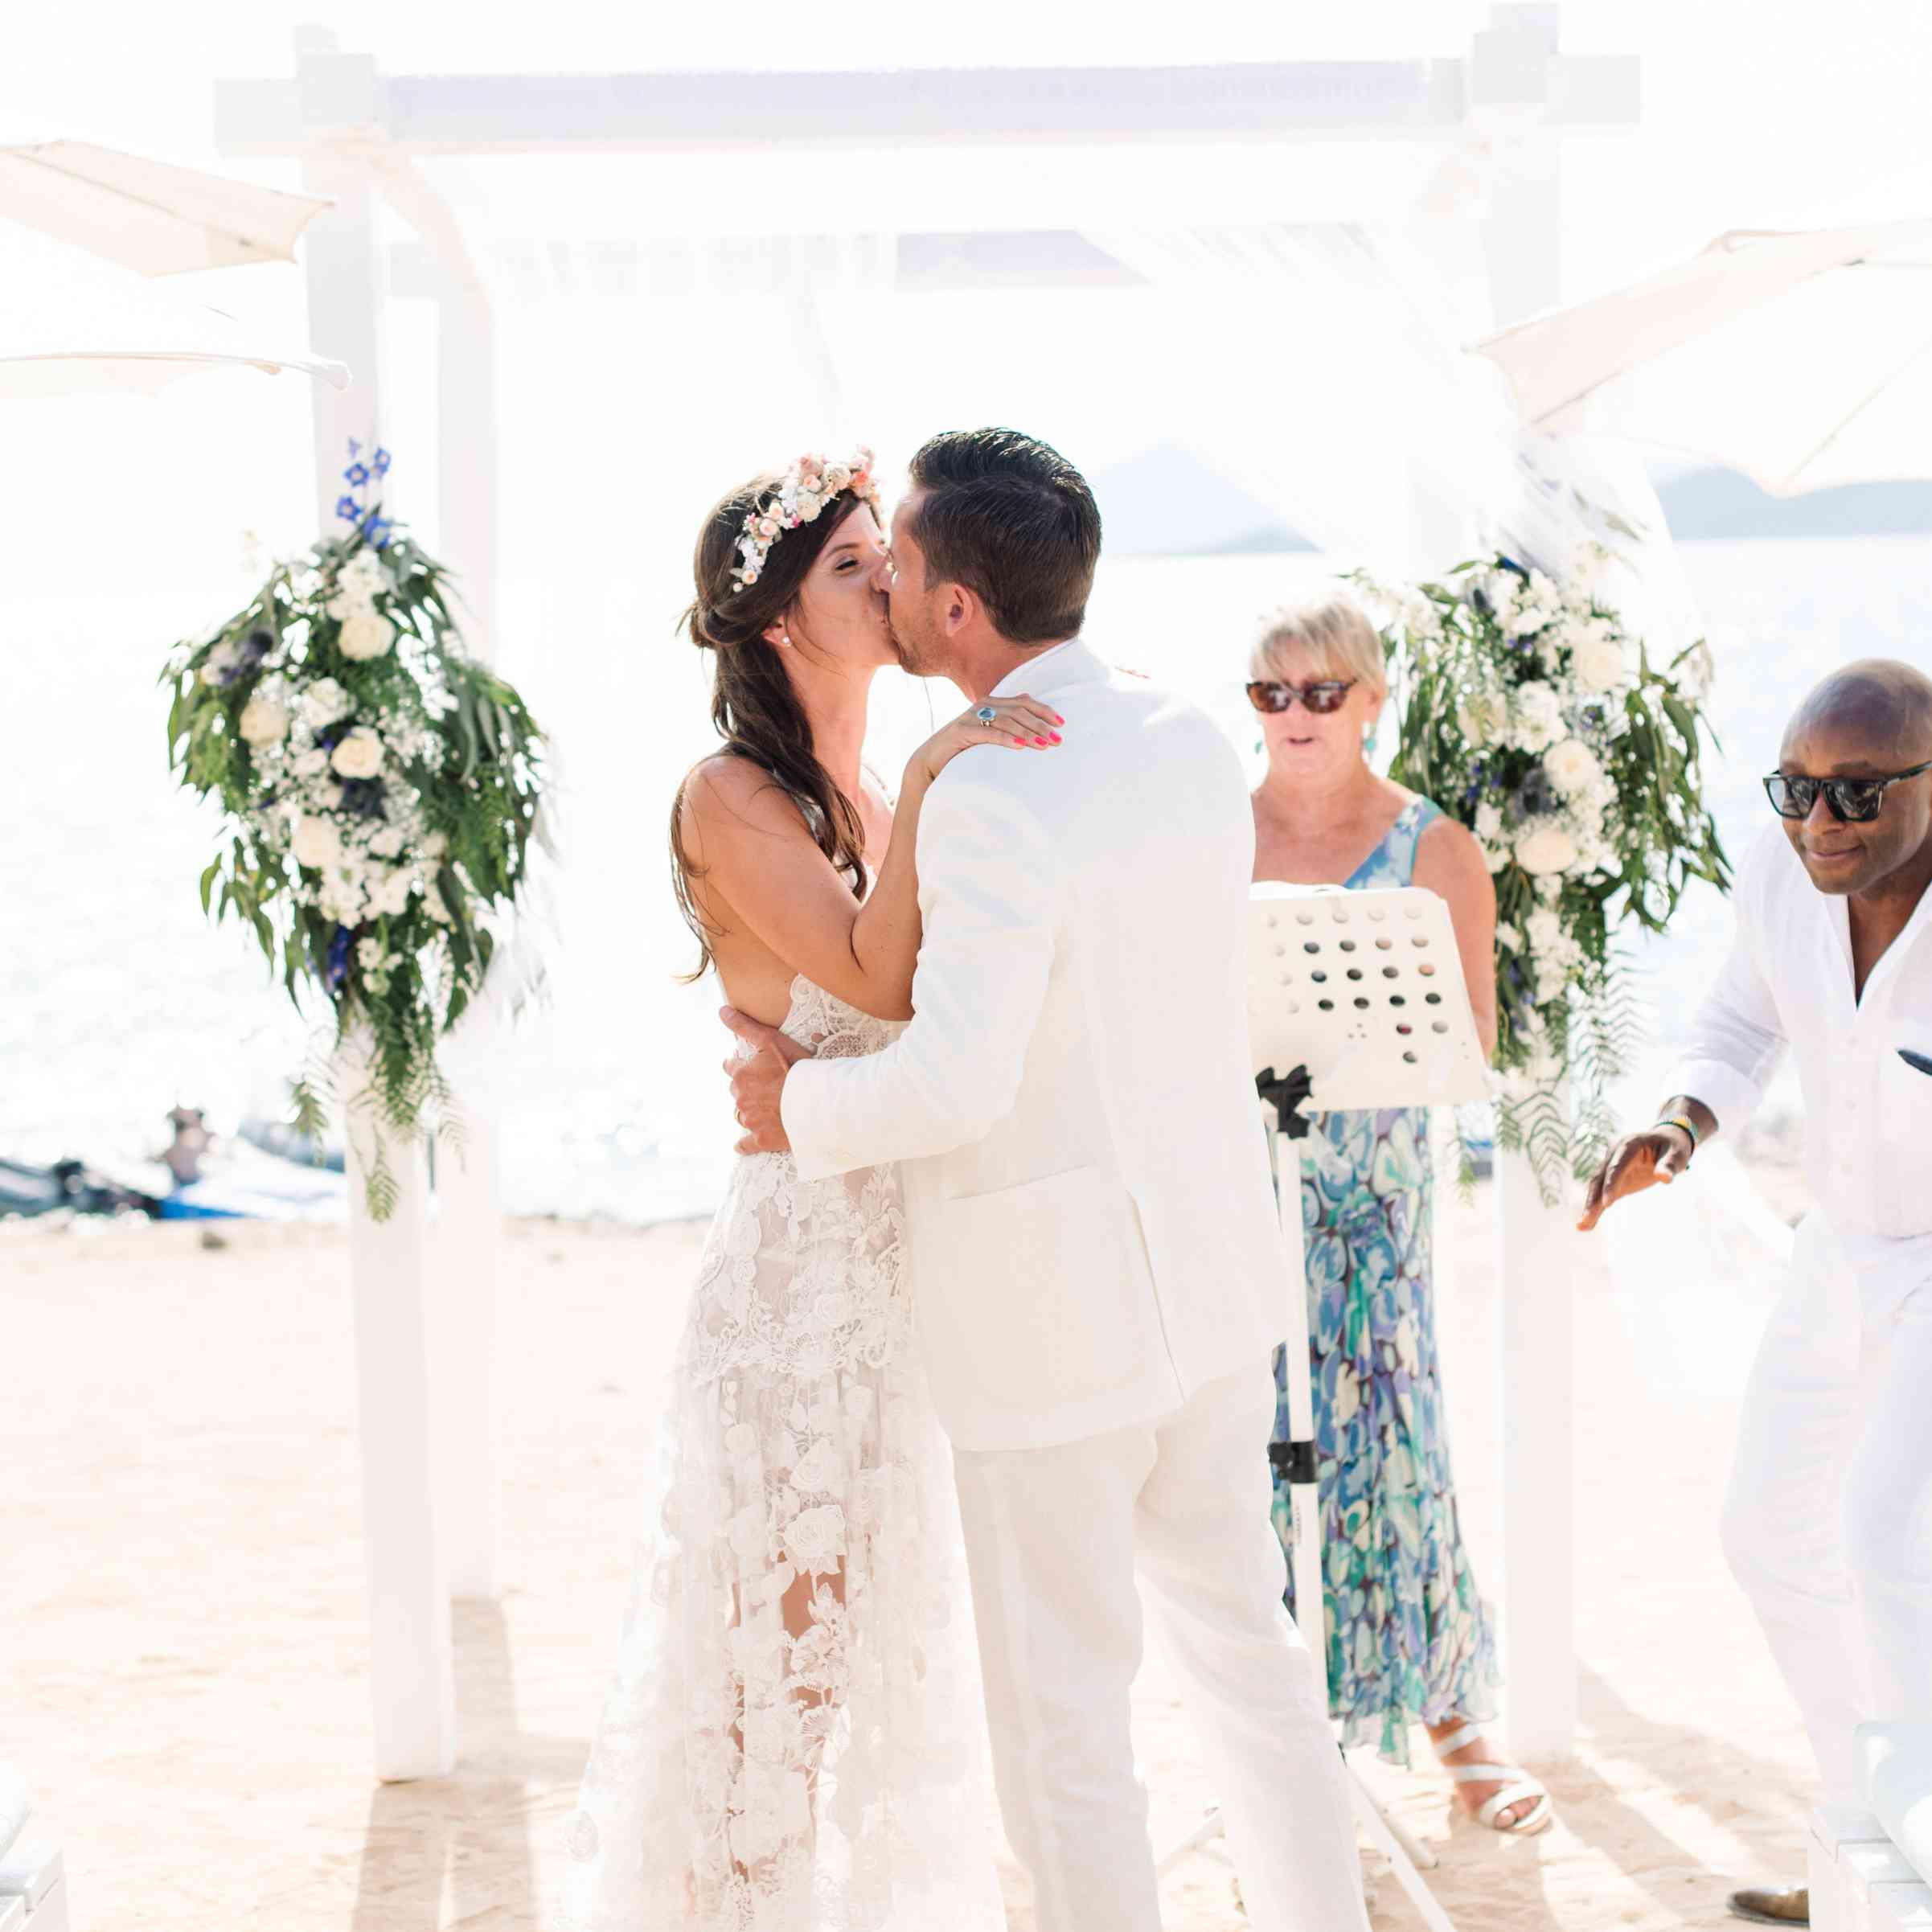 Bride and groom kiss at beach ceremony